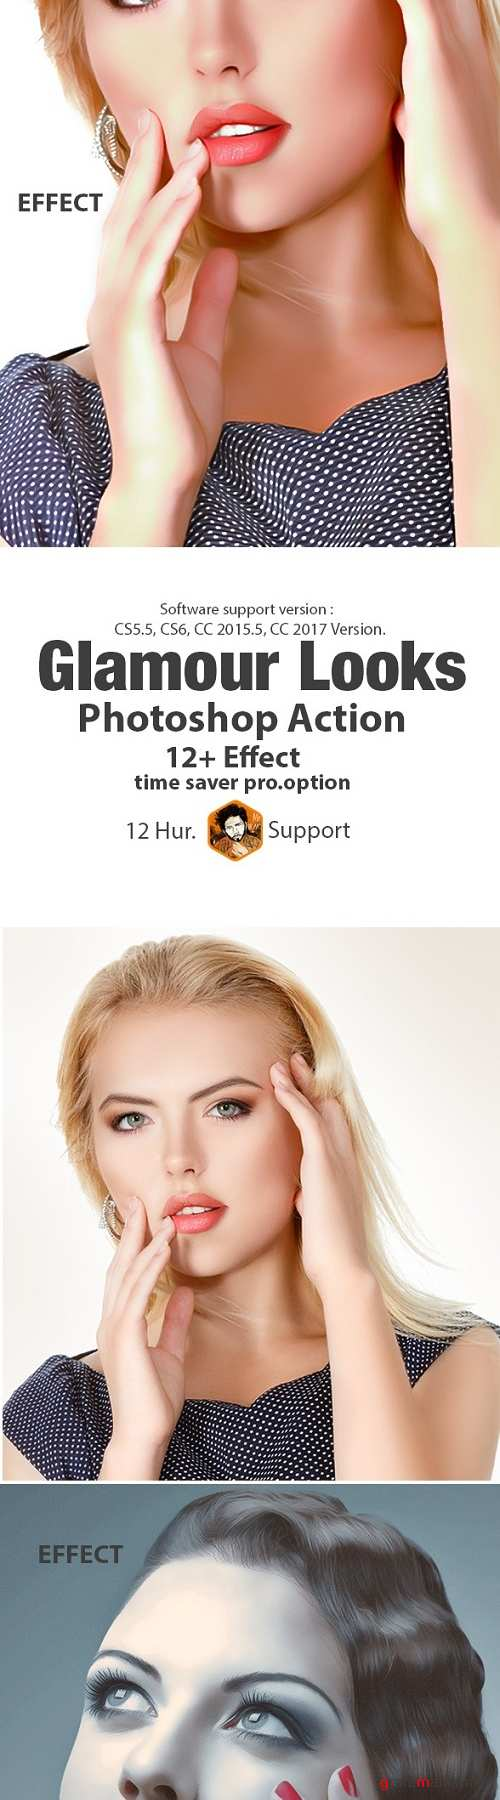 Glamour Looks Action - 19804884